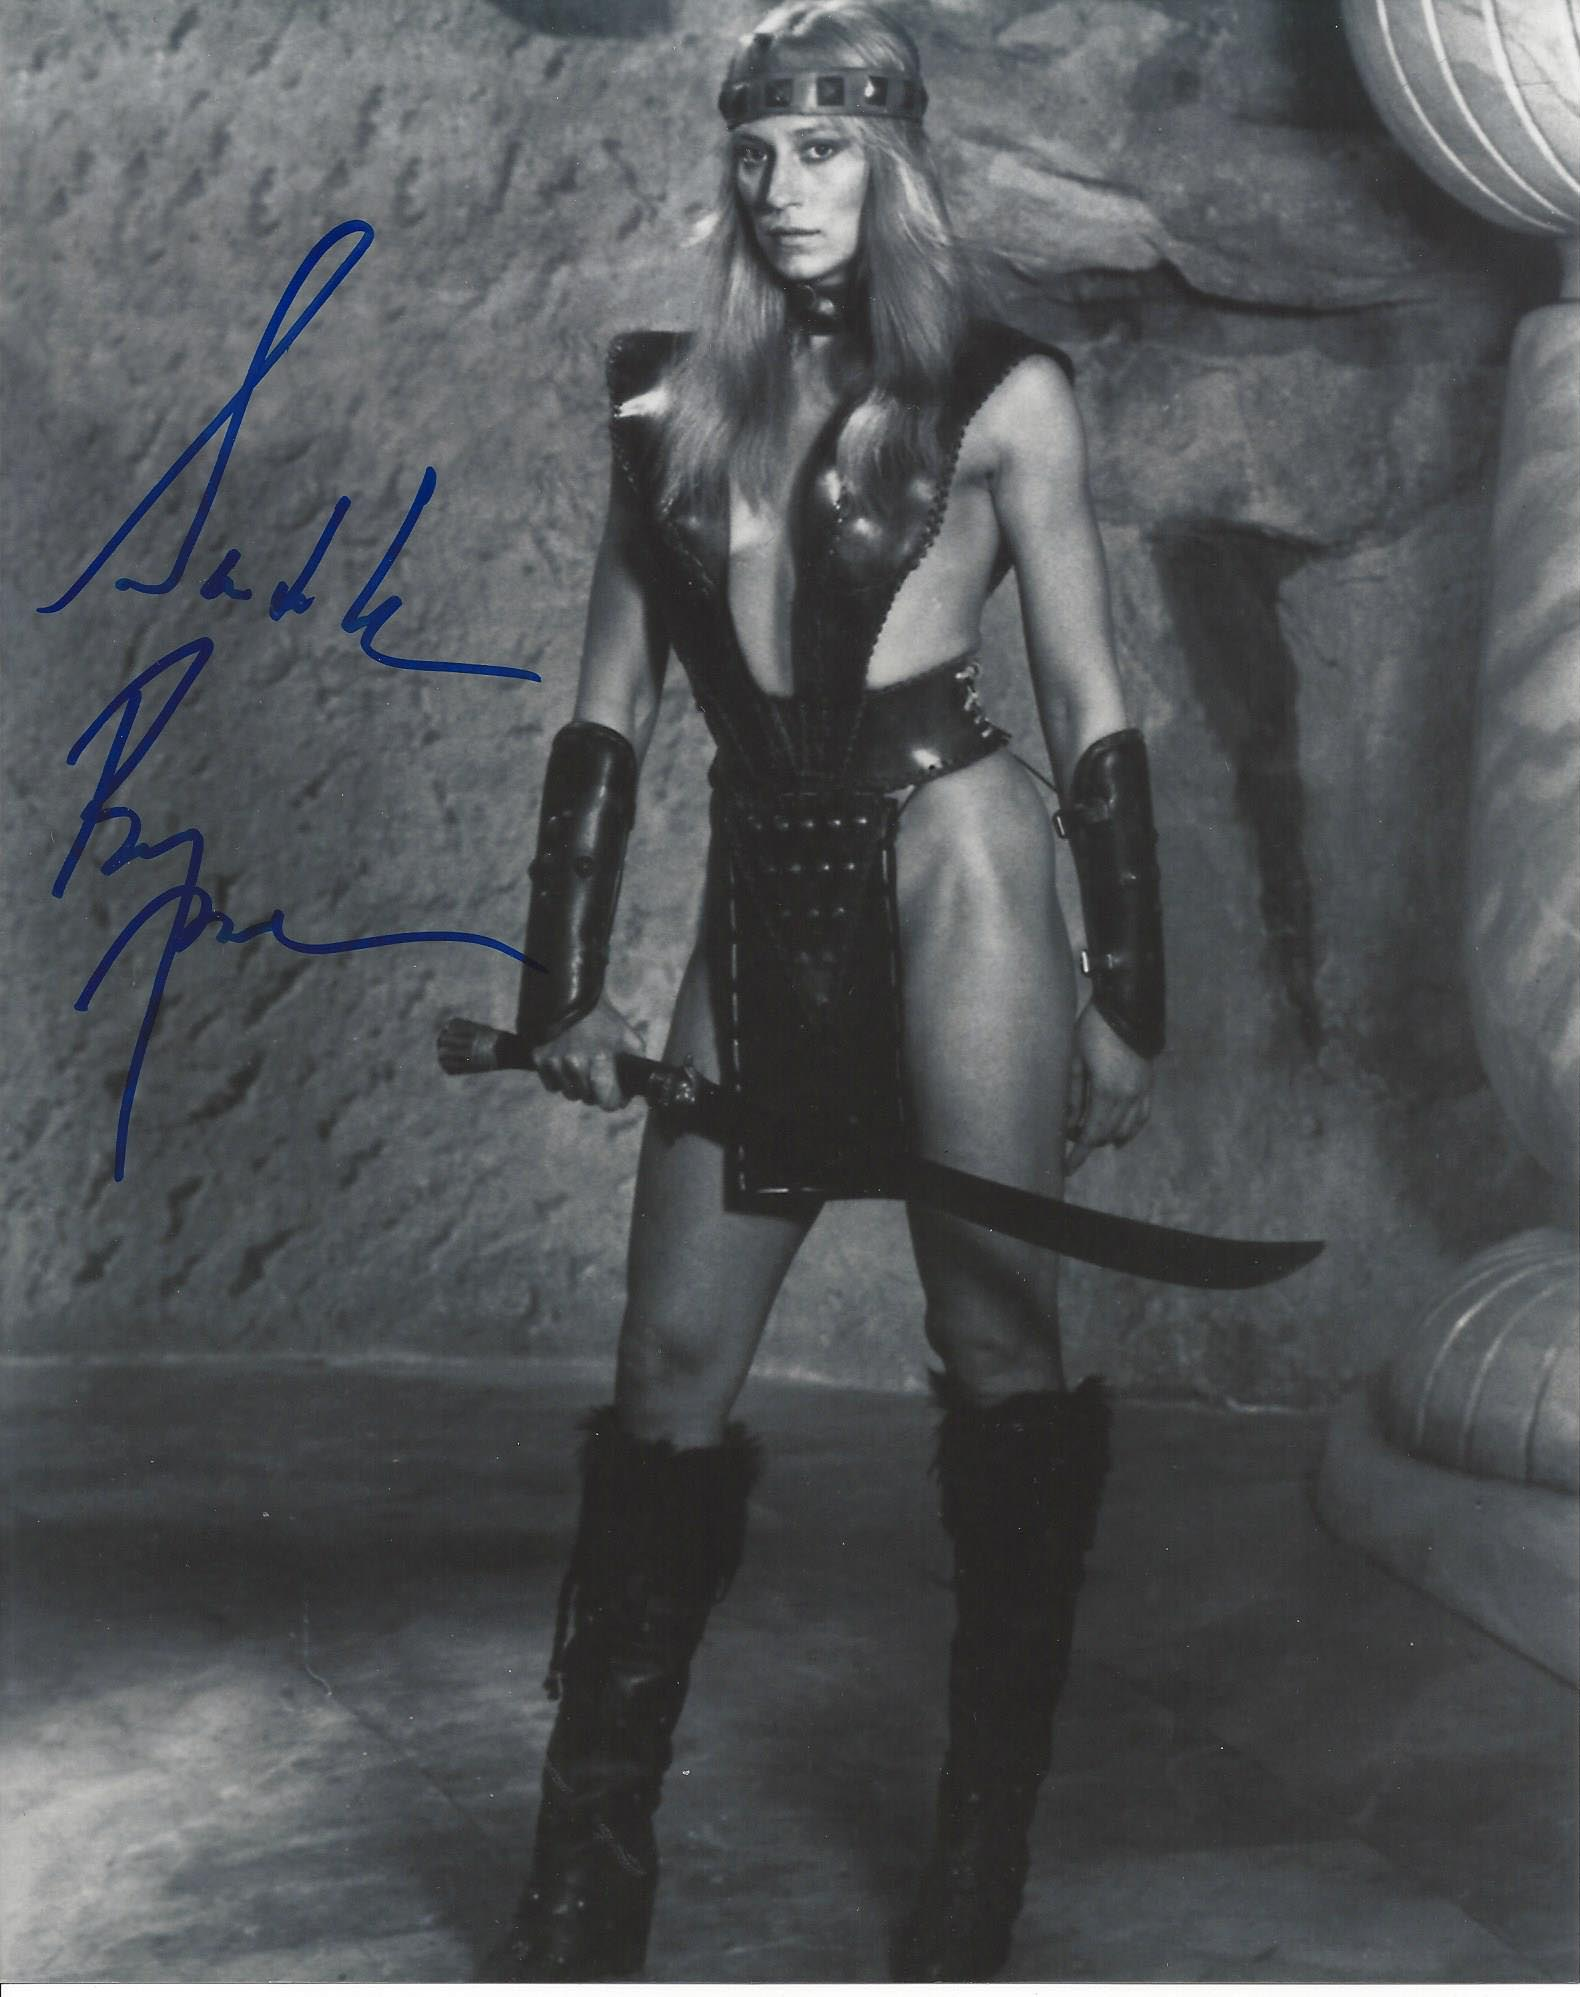 Sandahl Bergman Pit fighter photo Better Image Sandahl5